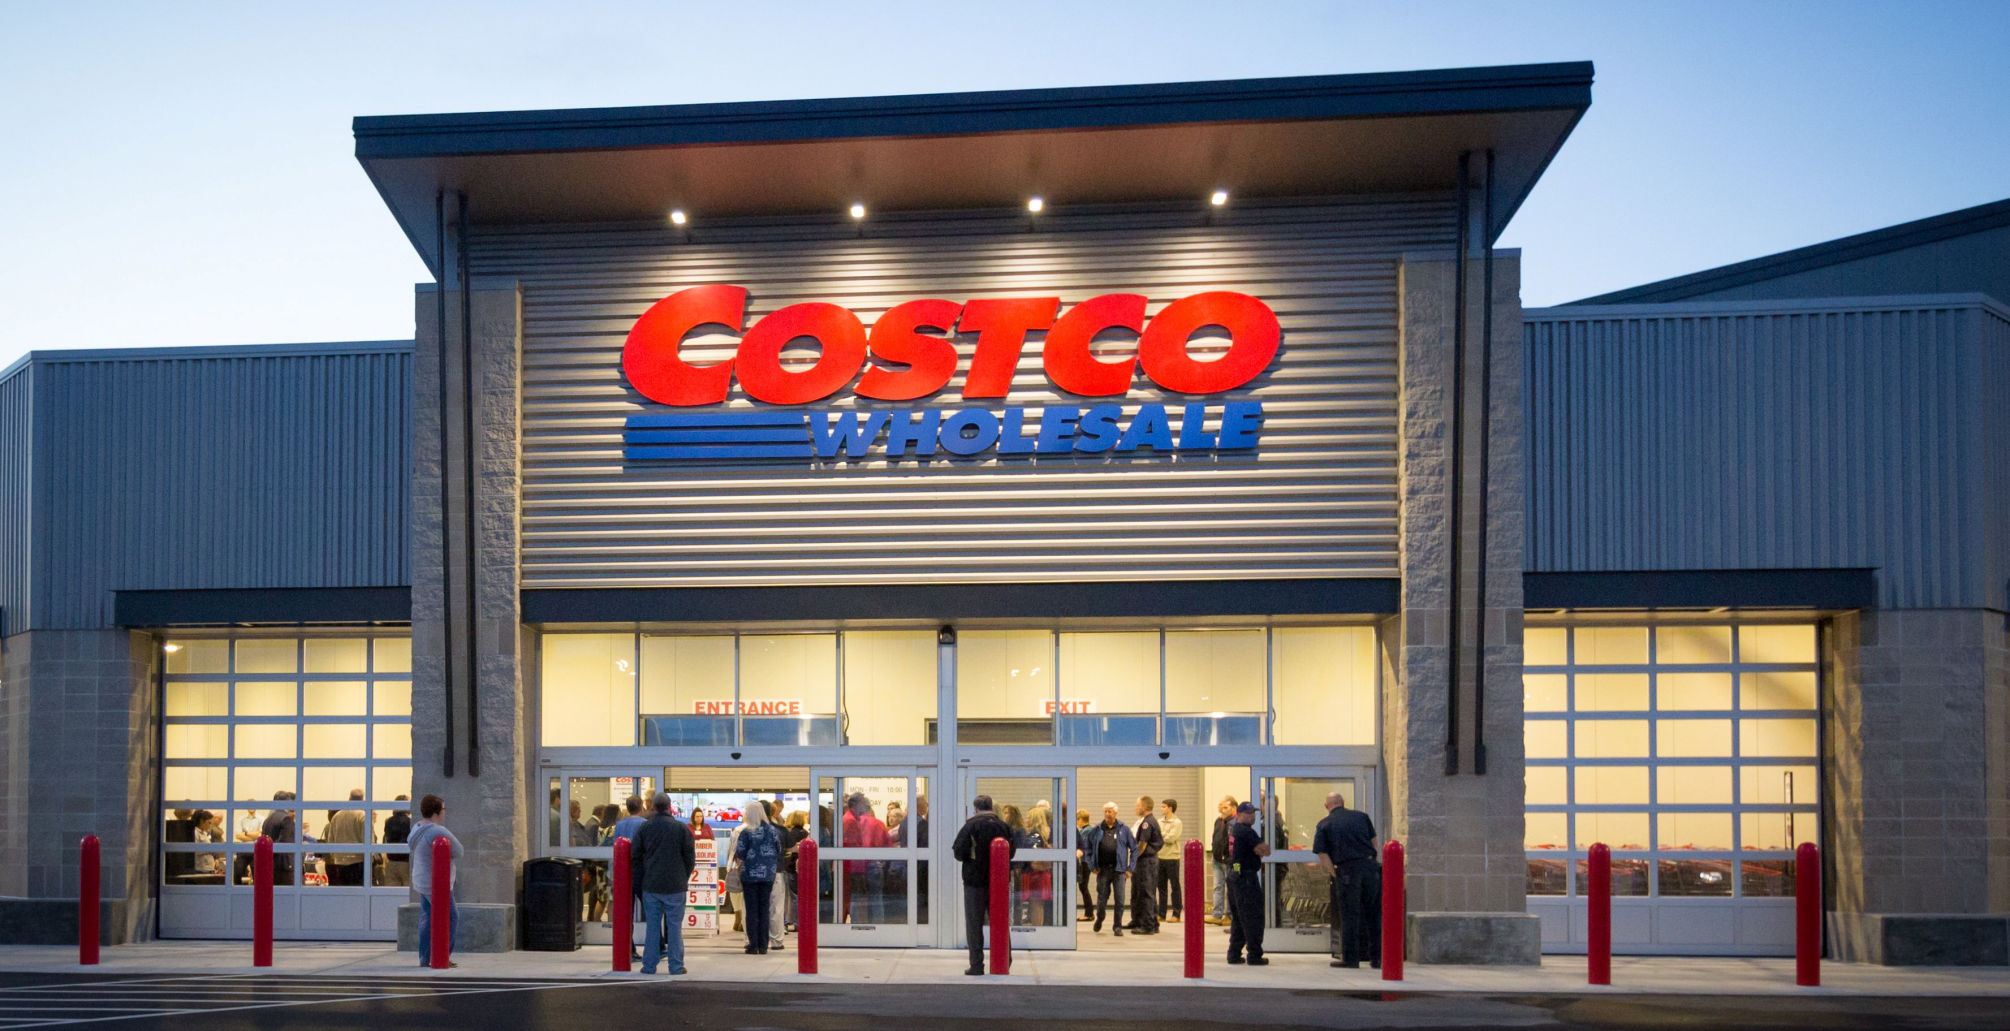 Costco shares down on fears of grocery delivery eating into margins